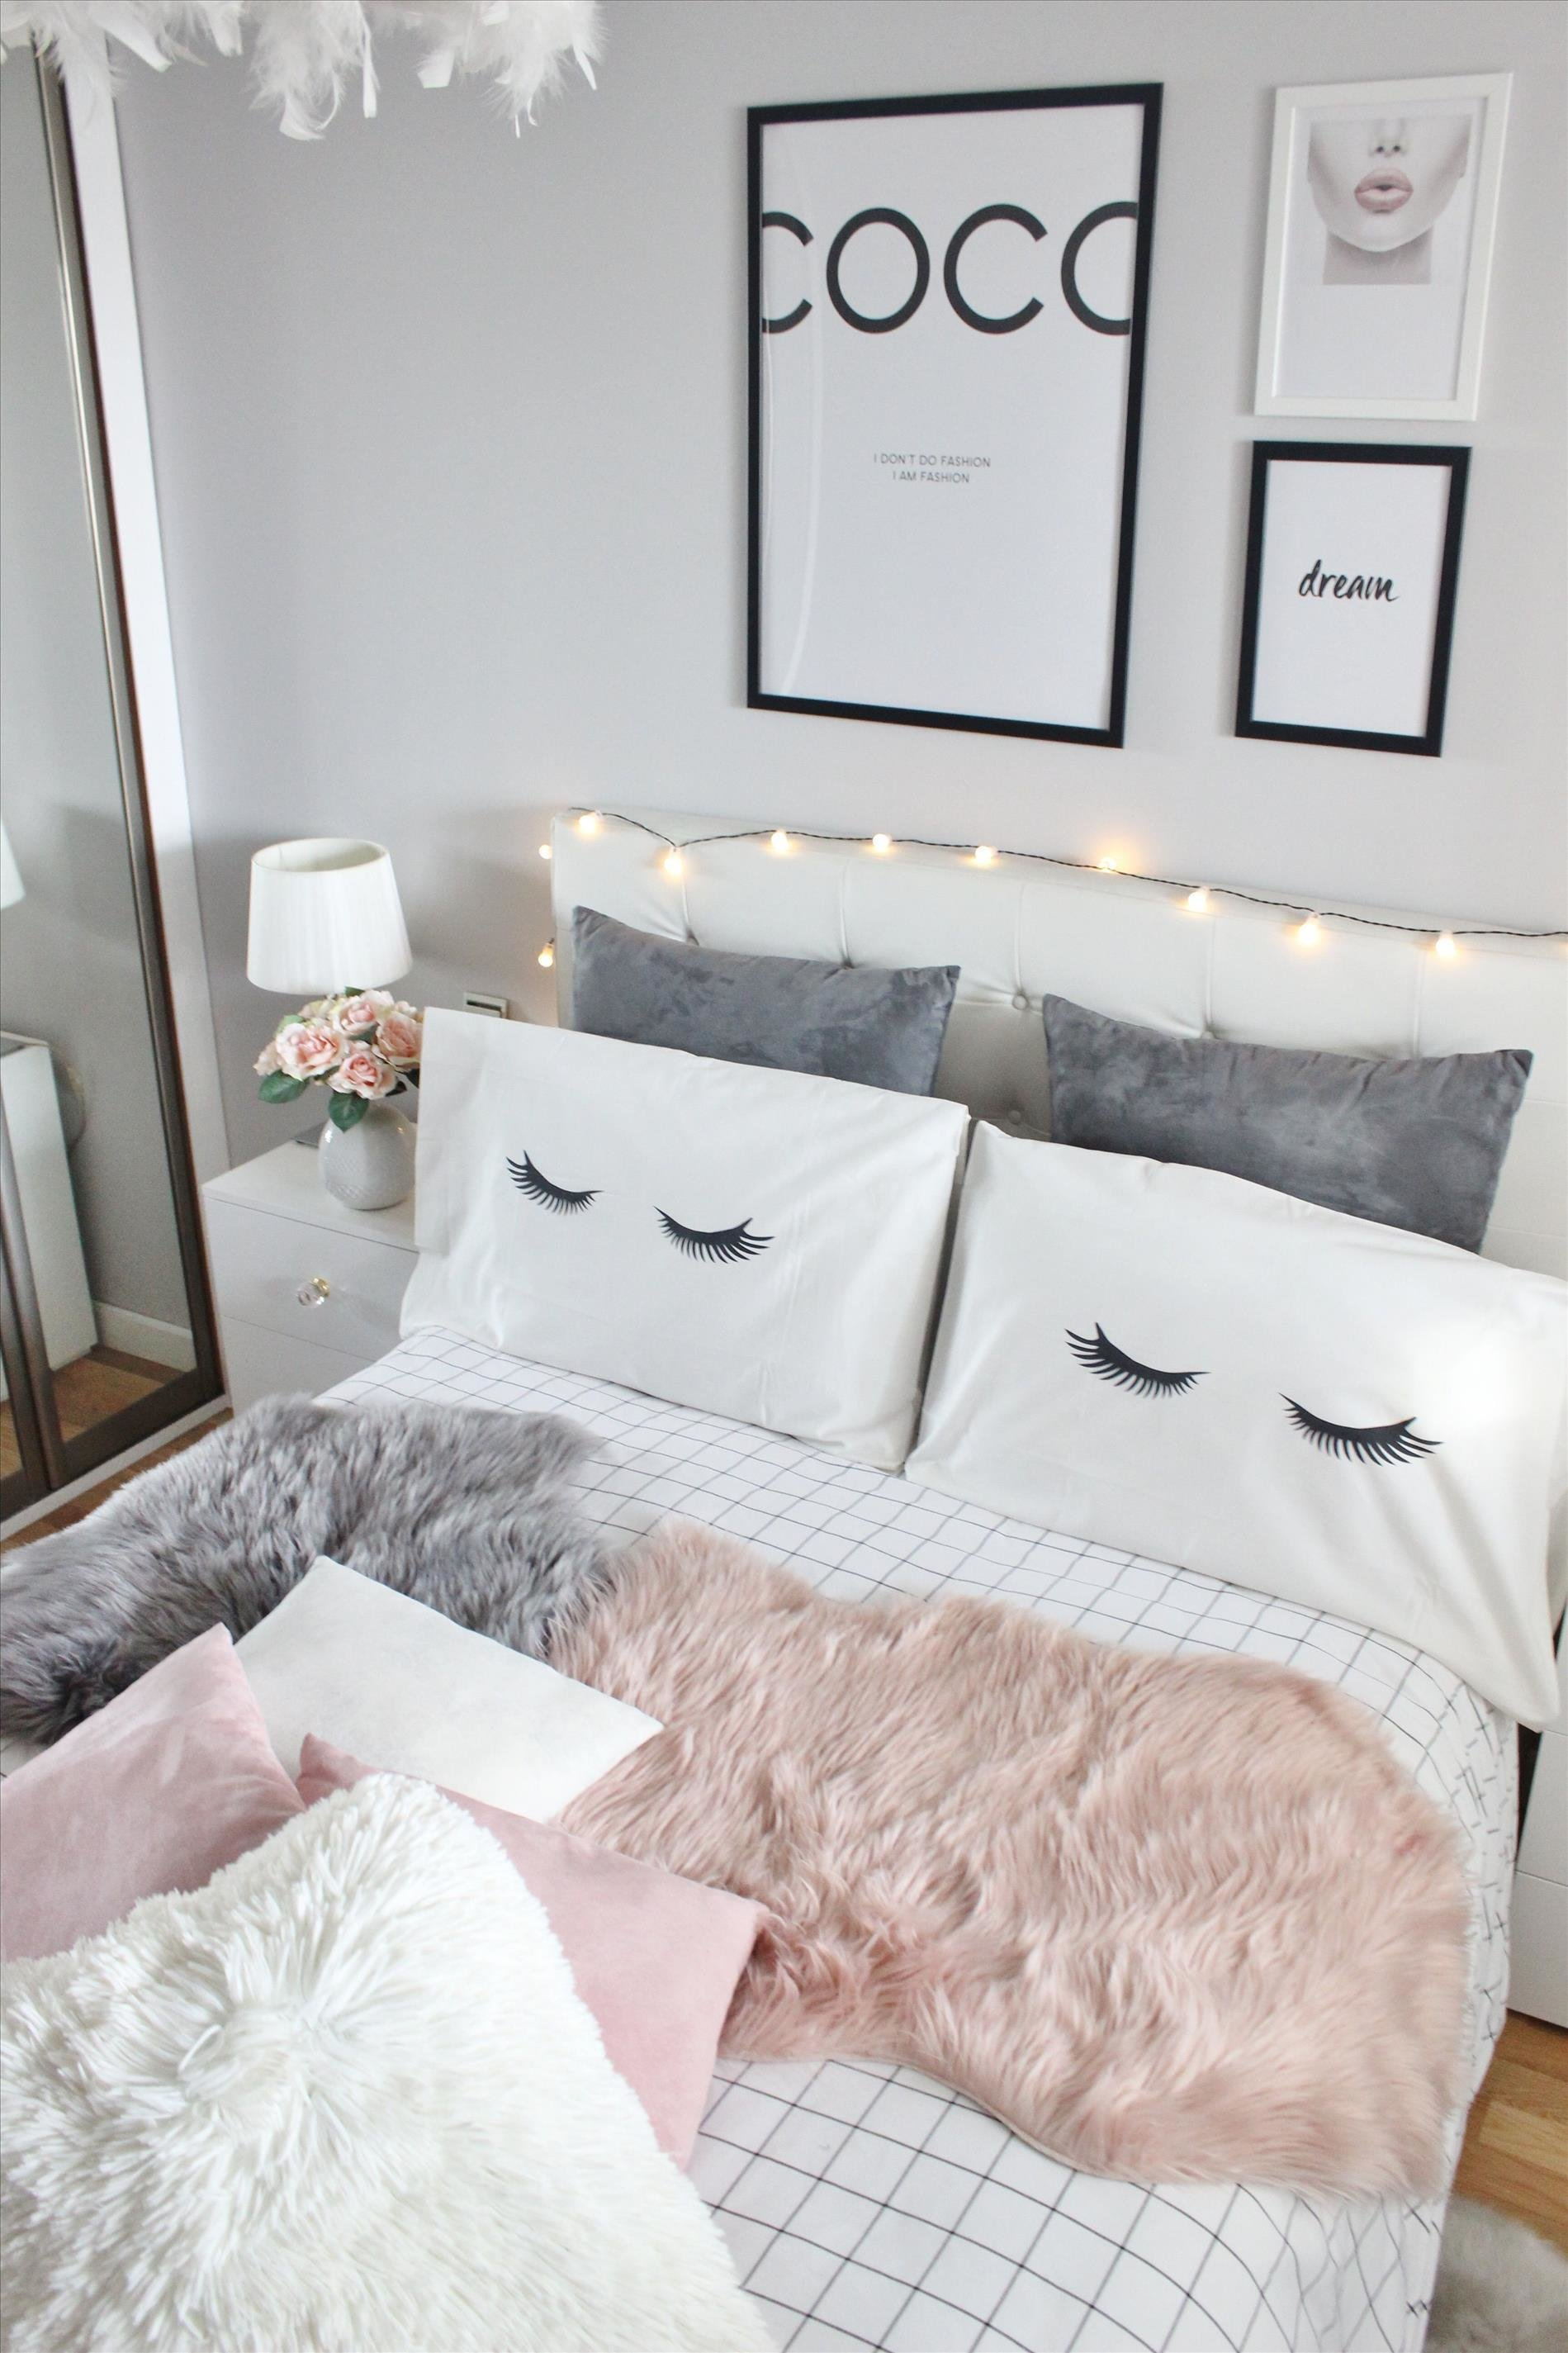 Best Bedroom Lighting Pink Fairy Lights Ceiling Tumblr String With Pictures